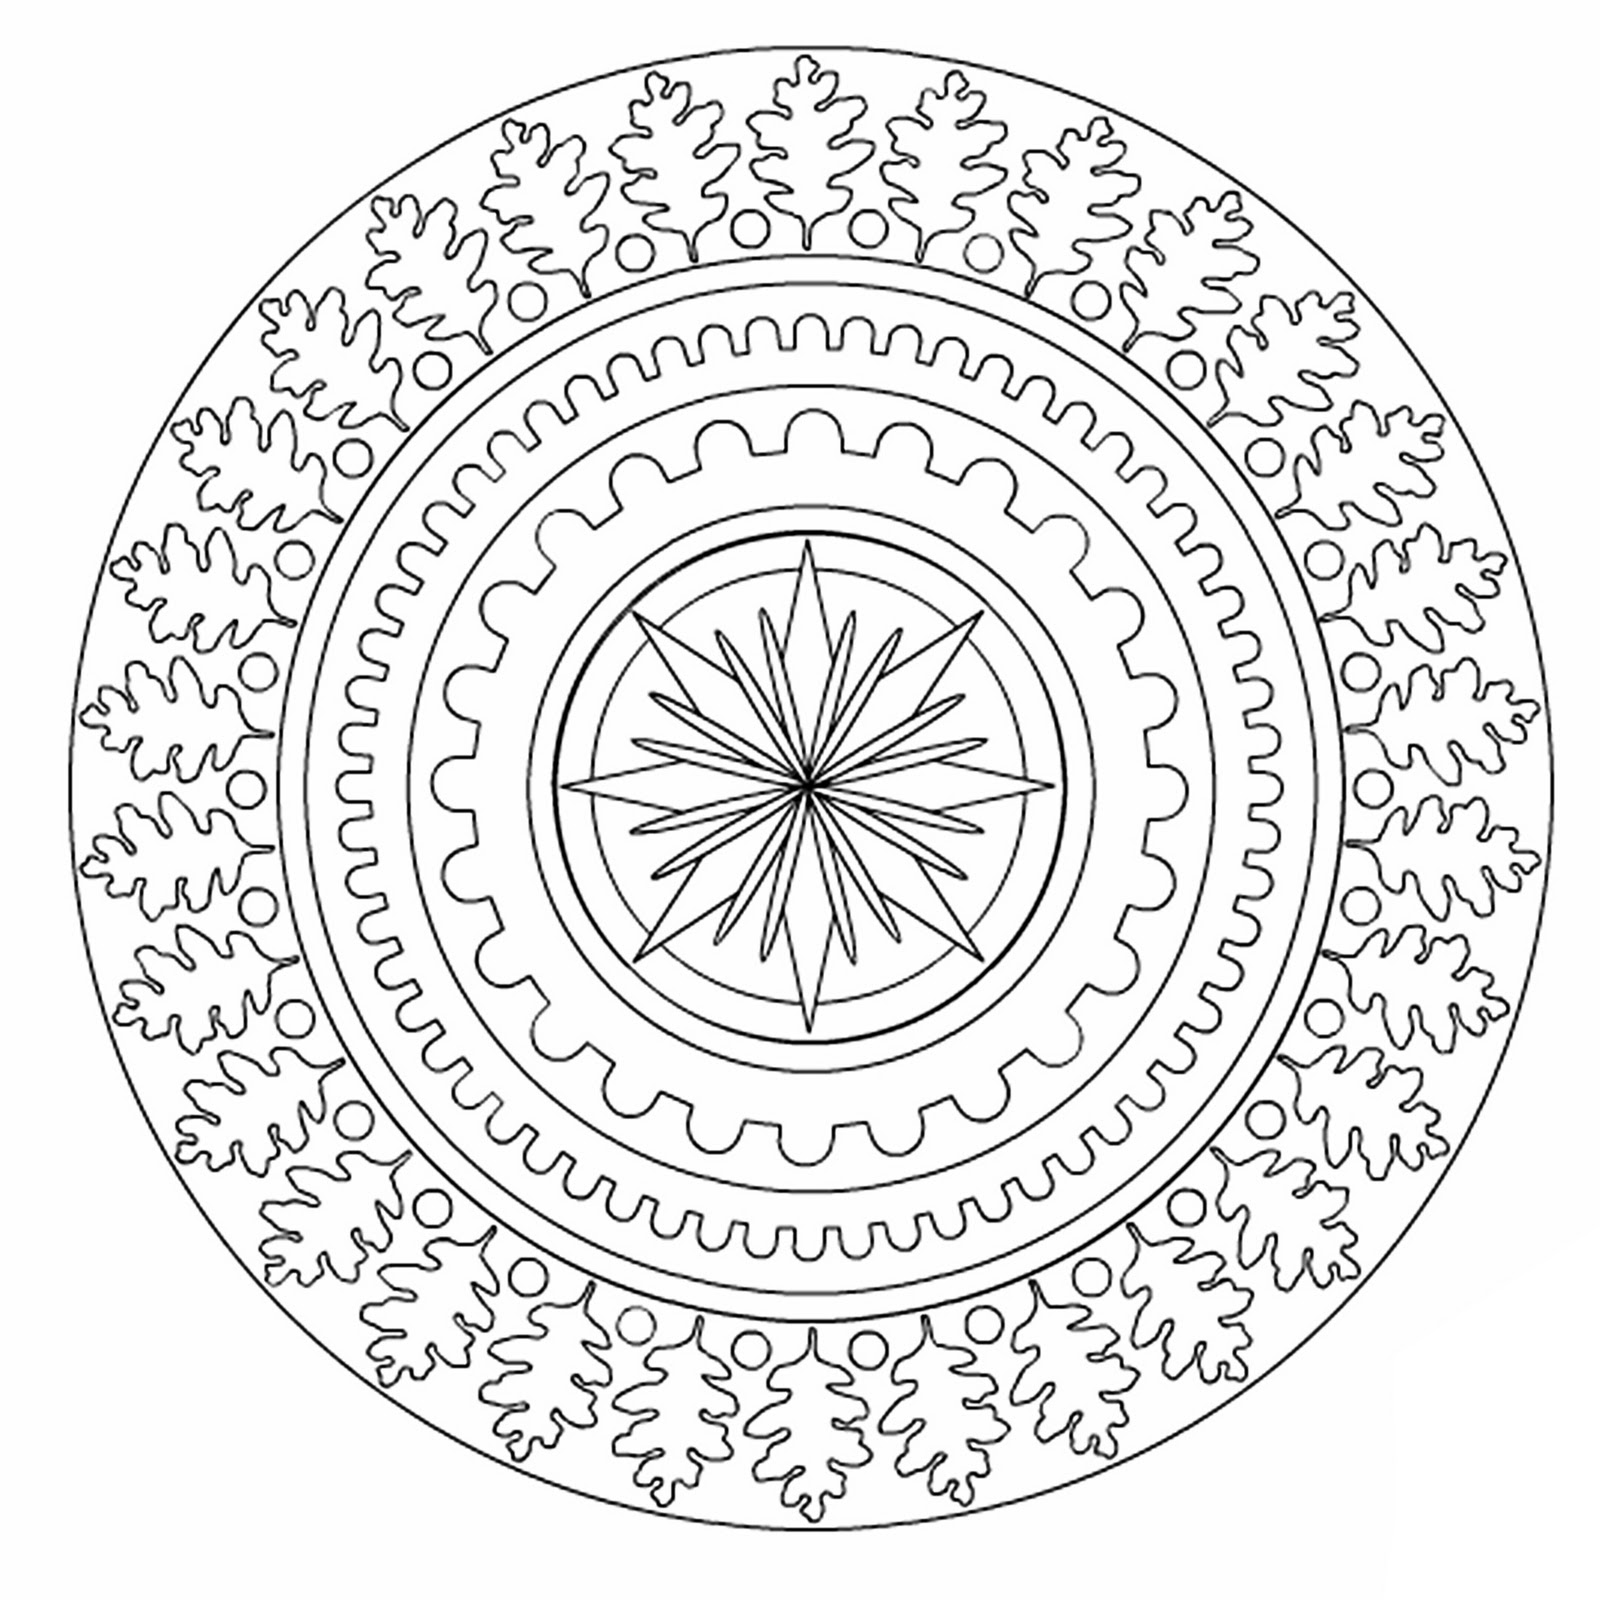 mandela pictures to color flower mandala coloring pages best coloring pages for kids mandela to pictures color